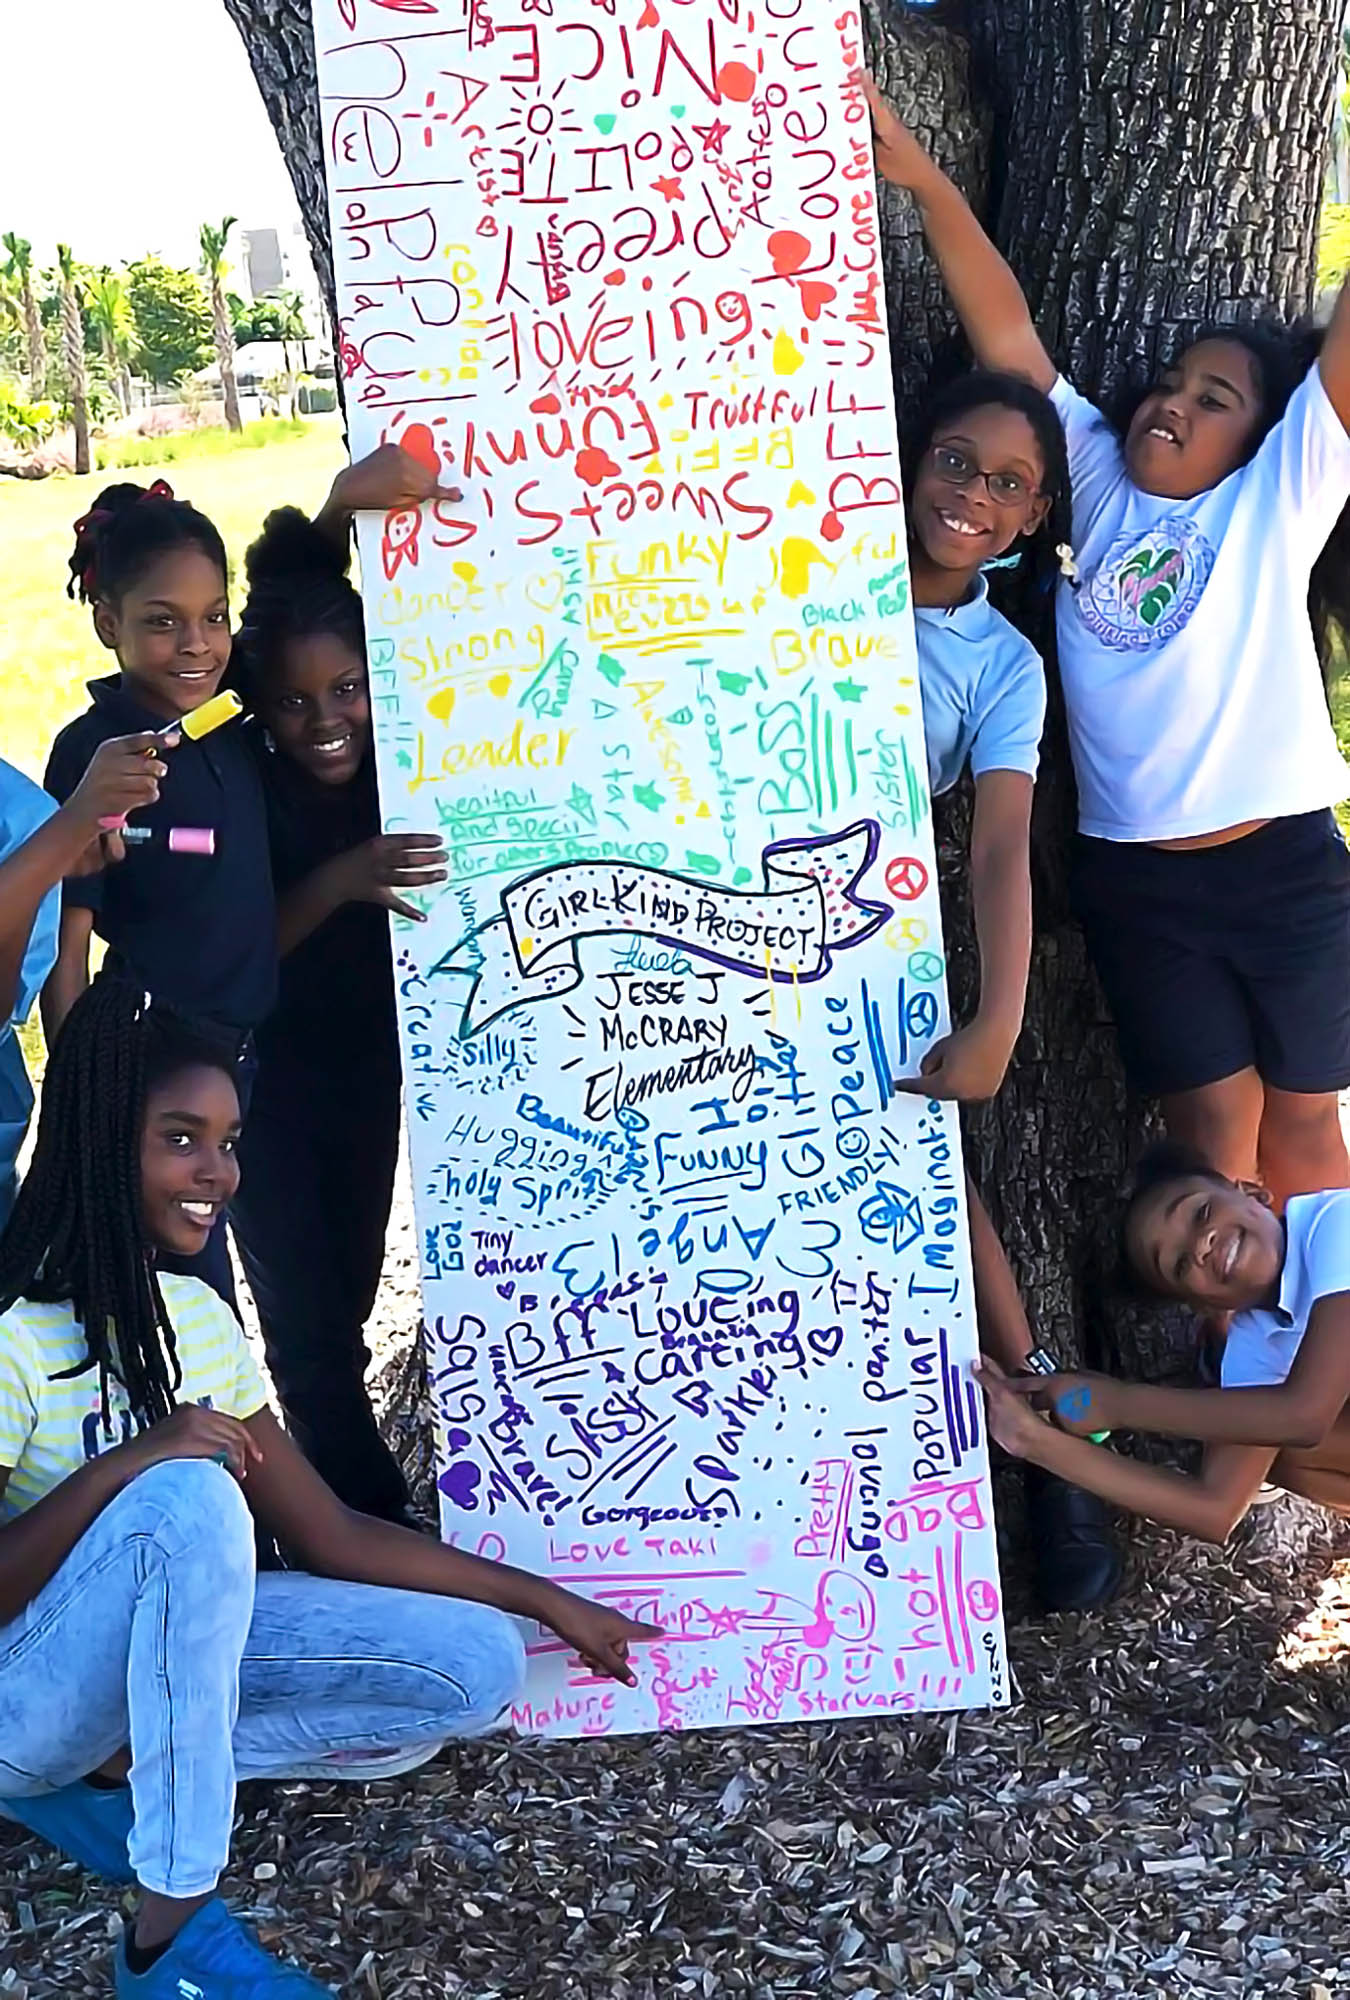 Students from Jesse J. McCrary, Jr Elementary School in Miami are posing with the GirlKind door to kindness they created